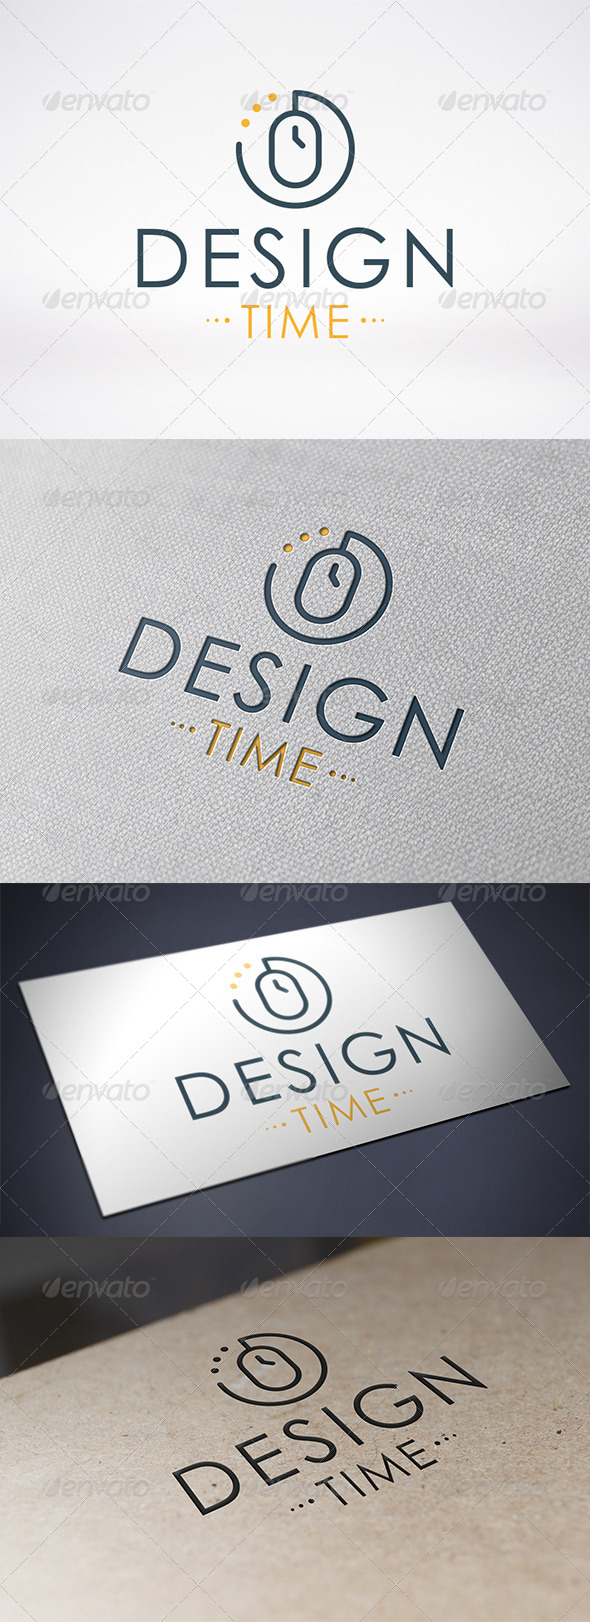 Design Time Logo Template - Objects Logo Templates